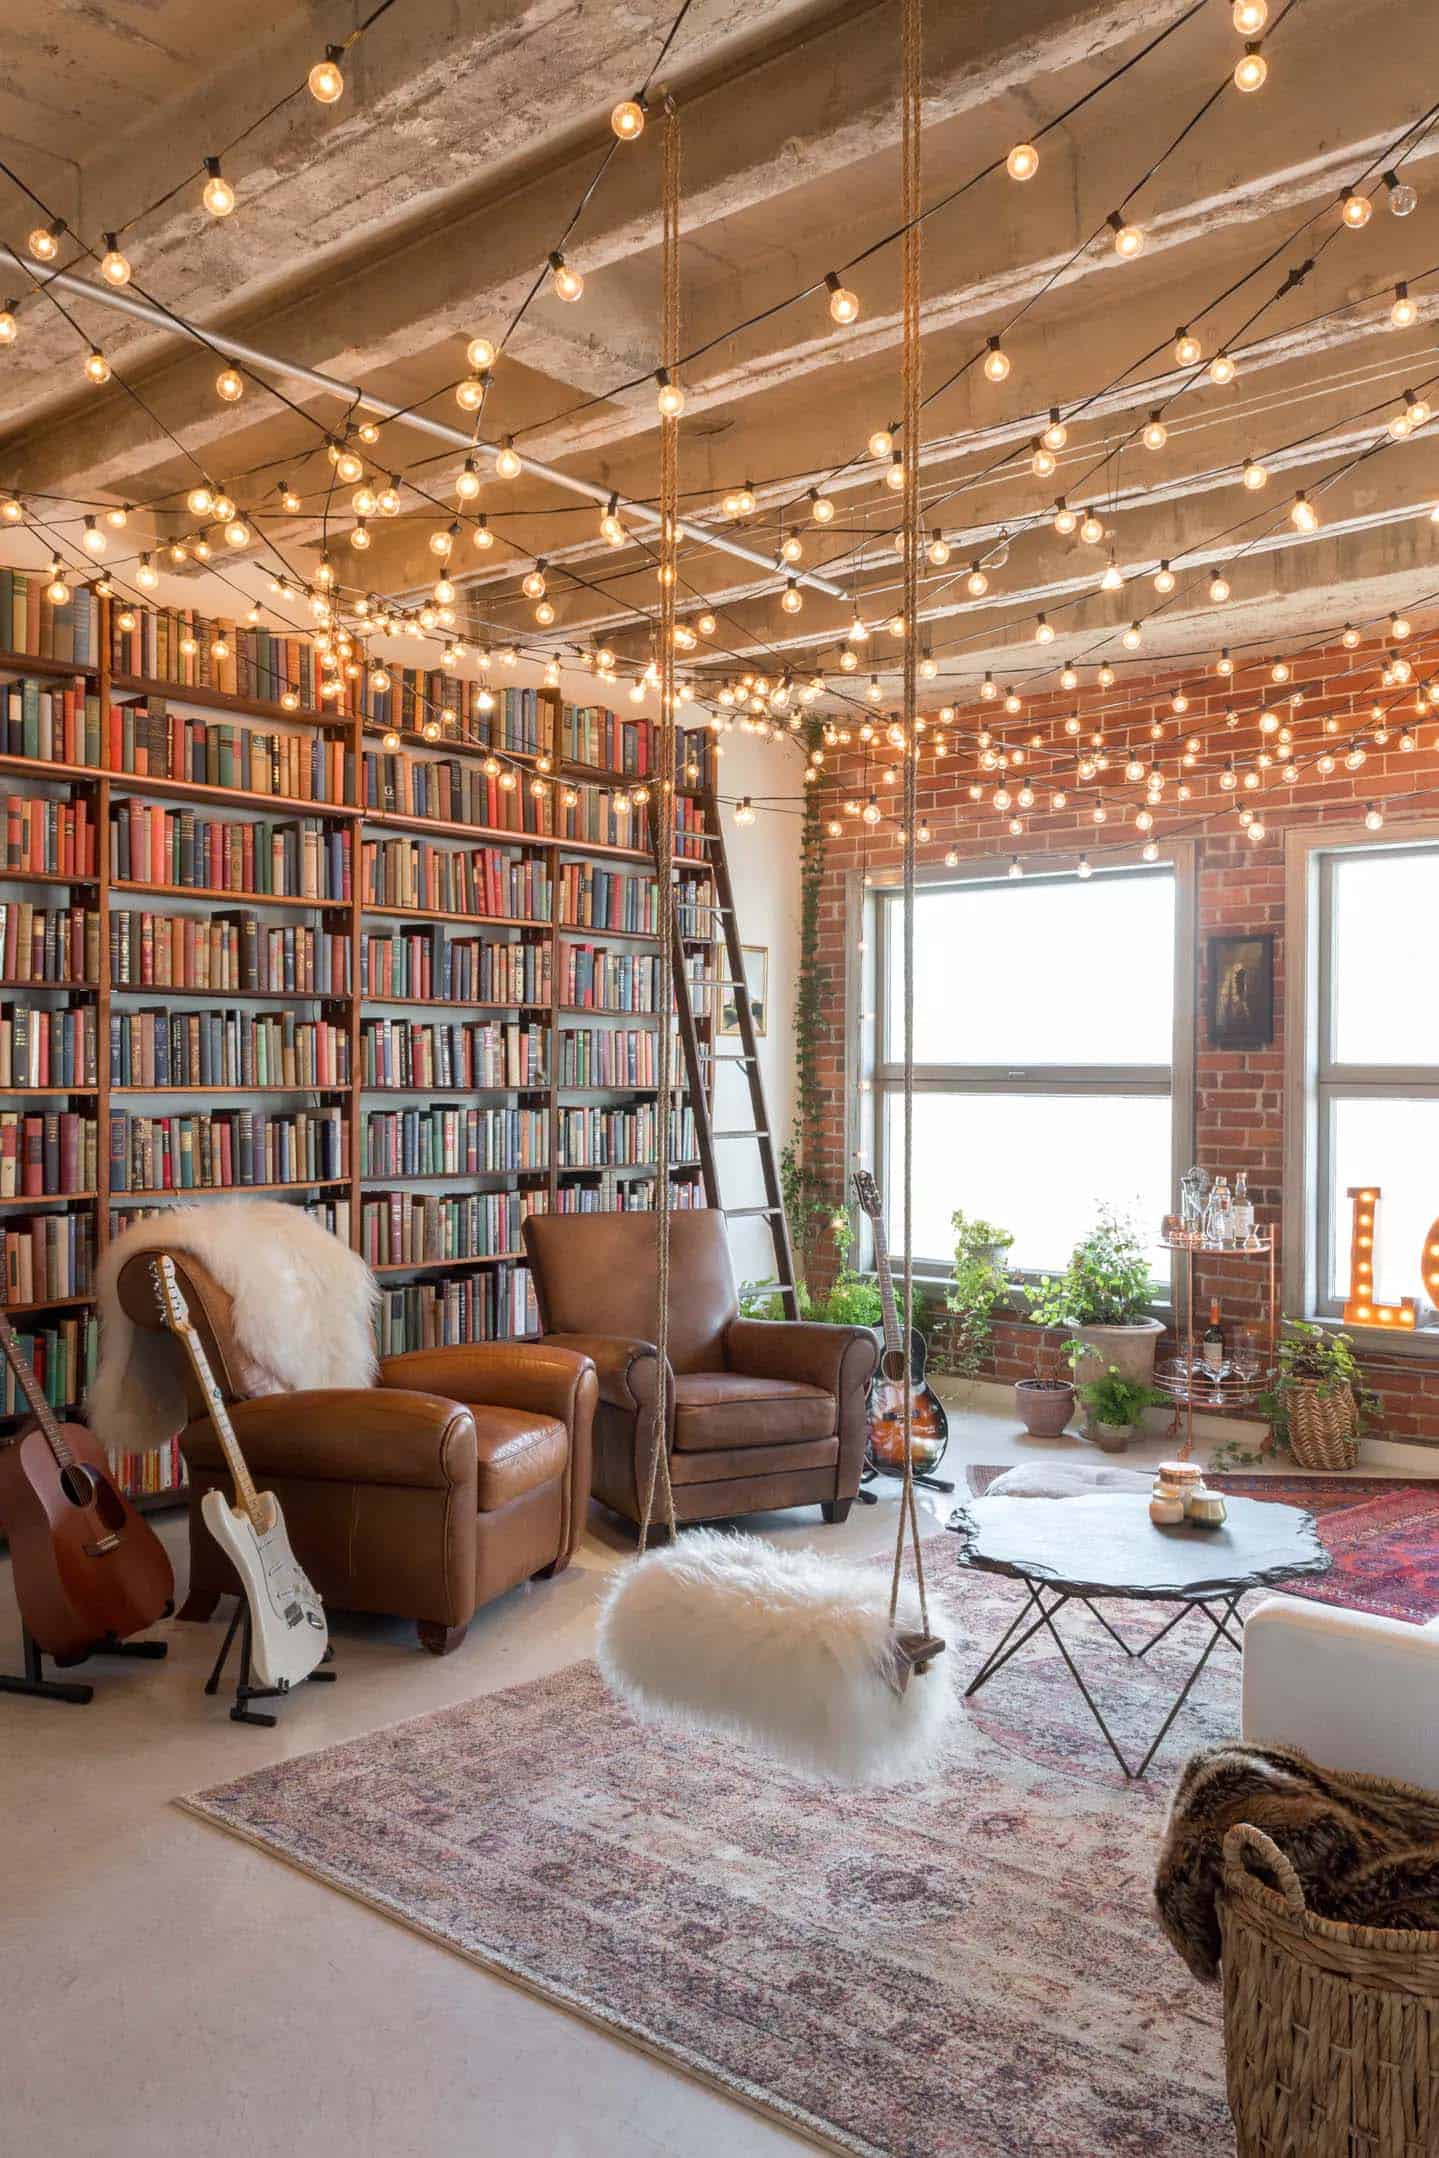 Home Design Ideas Book: Small Book-filled Loft In Downtown Los Angeles Offers A